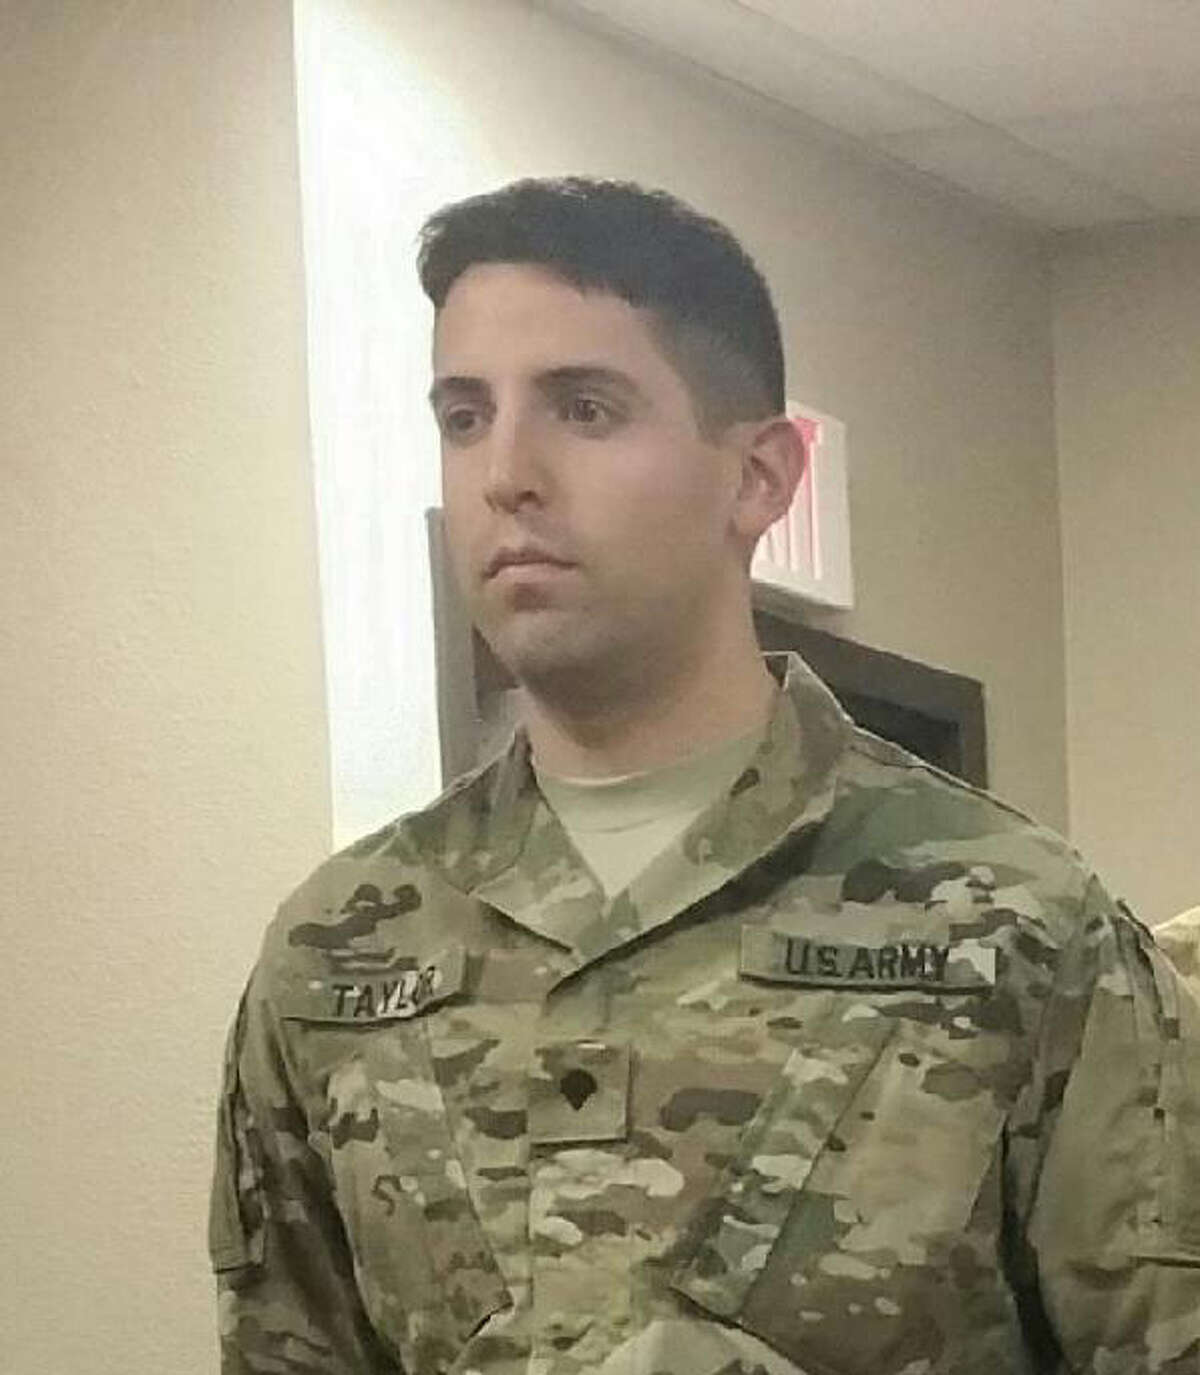 Sgt. Alex Mathew Dean Taylor, 23, was found unresponsive at Fort Hood Jan. 11, 2016. Taylor is from Texas City.